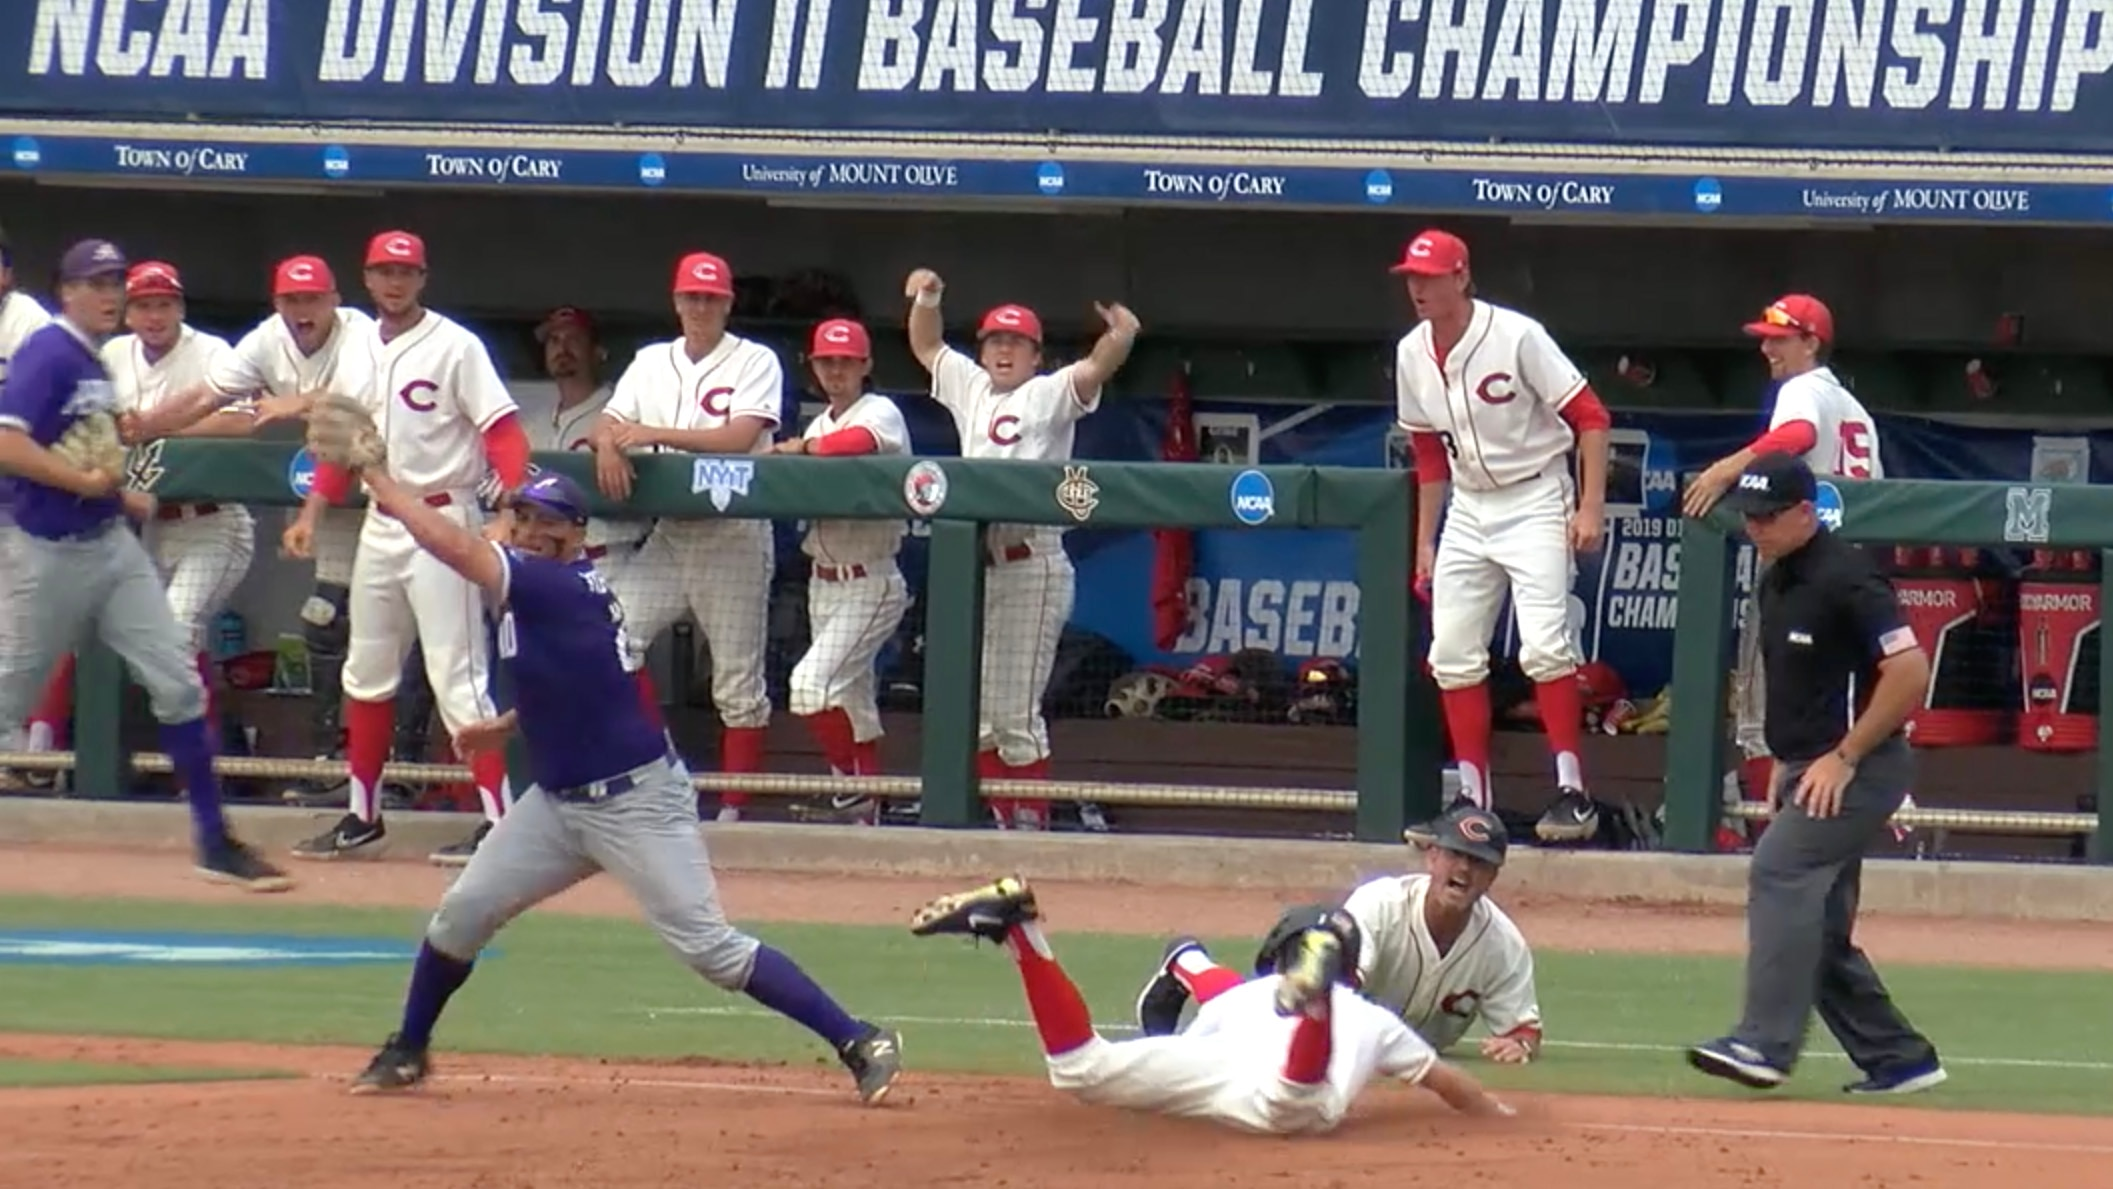 Watch the recap from Day Five of the 2019 DII Baseball Championship